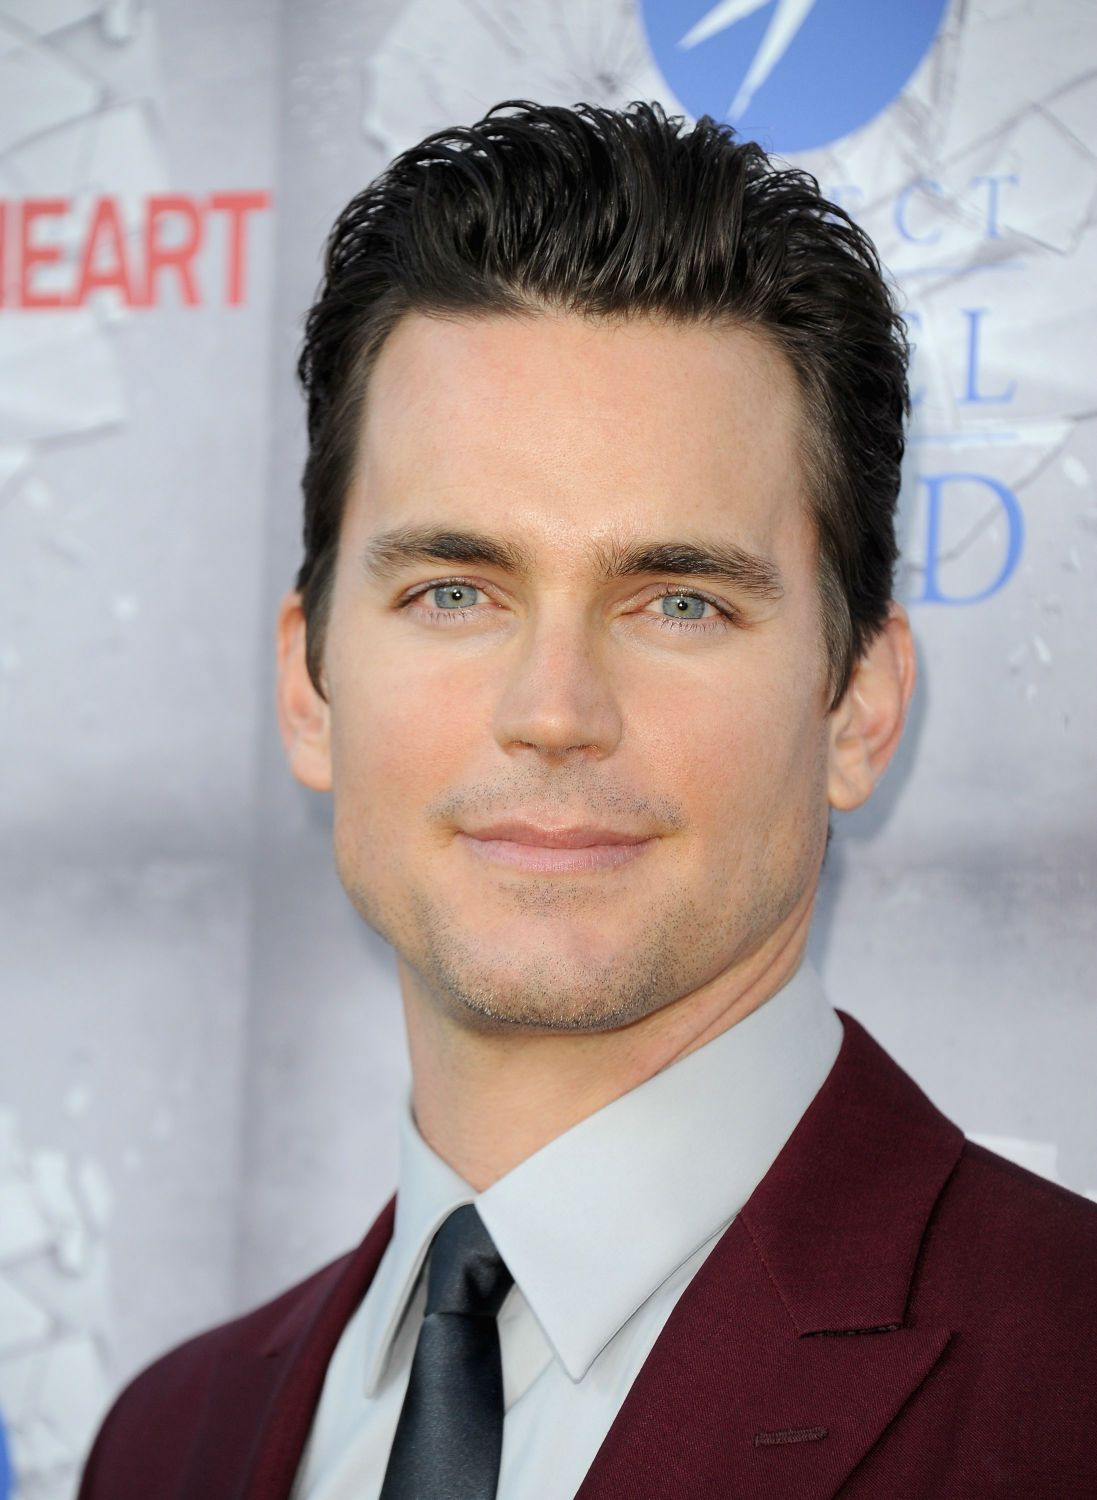 The beautiful and talented, Mr. Bomer. TNH premiere in California, May 19, 2014